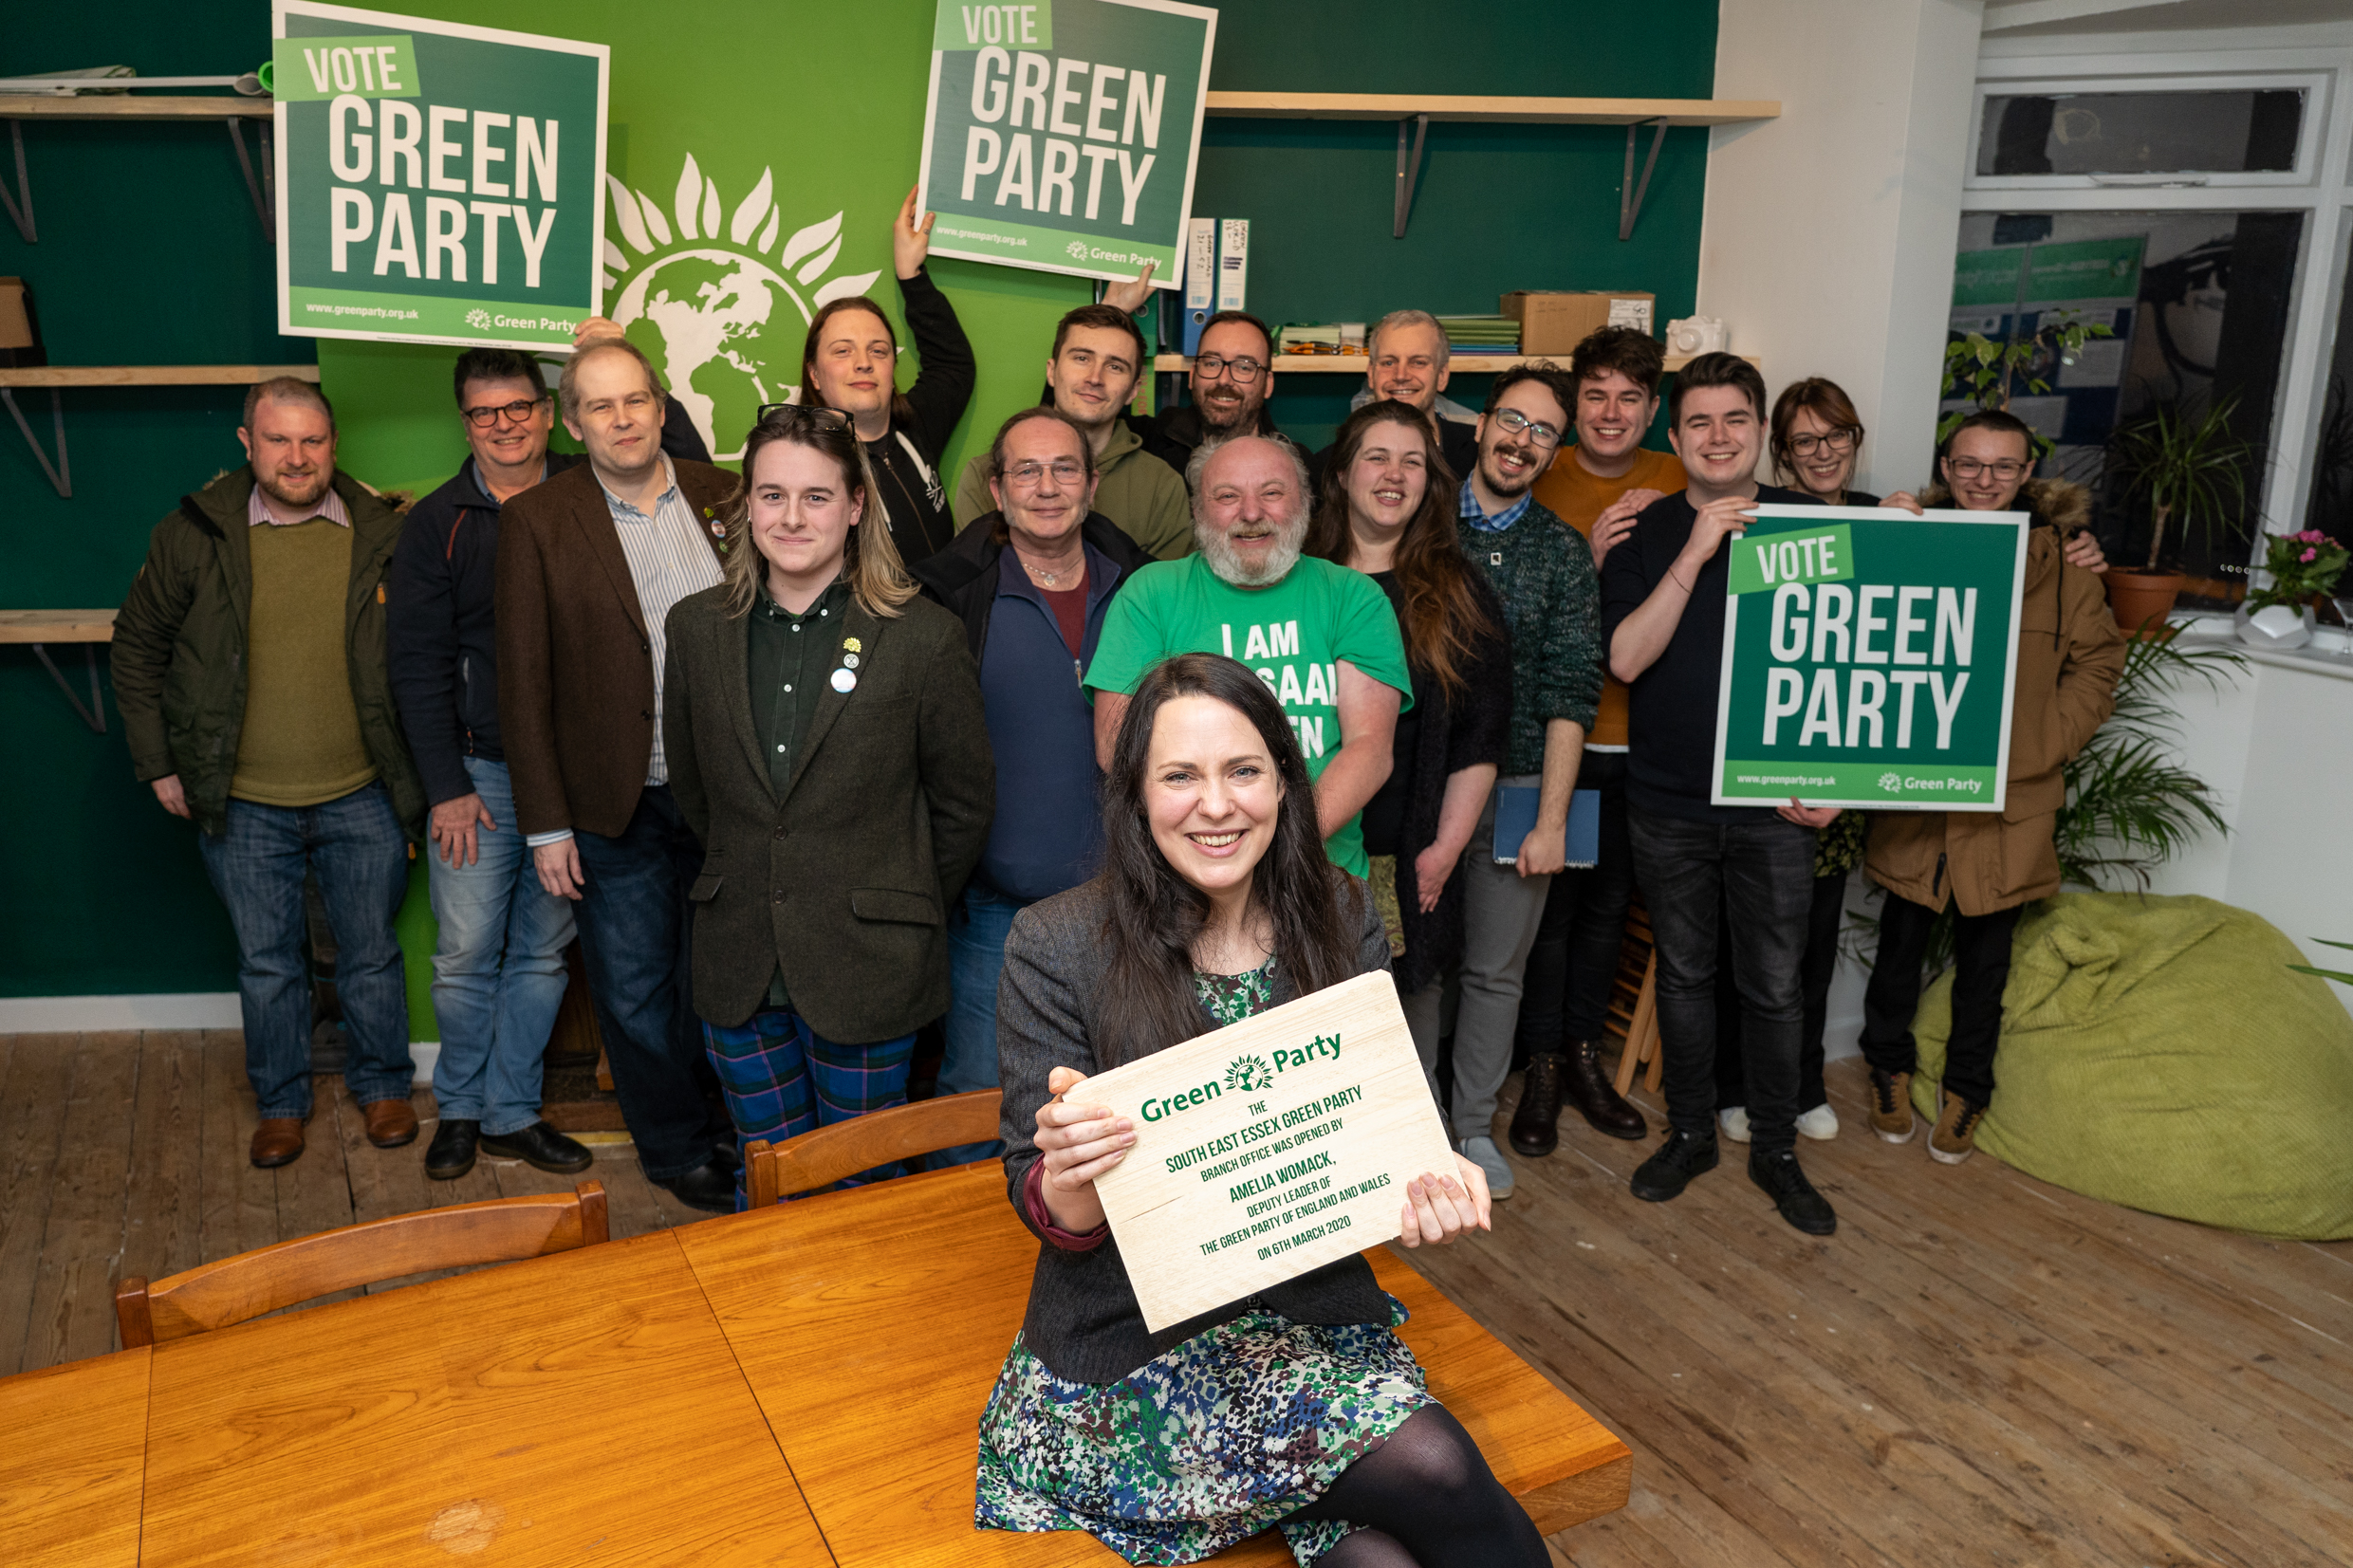 AMELIA WOMACK OPENING THE NEW gREEN pARTY OFFICE AT THE rAILWAY, sOUTHEND. Green Party Fundraiser at the Railway Southend with green economy stalls, guest speakers BENALI HAMDACHE and AMELIA WOMACK (deputy leader of the Green Party) and live bands.